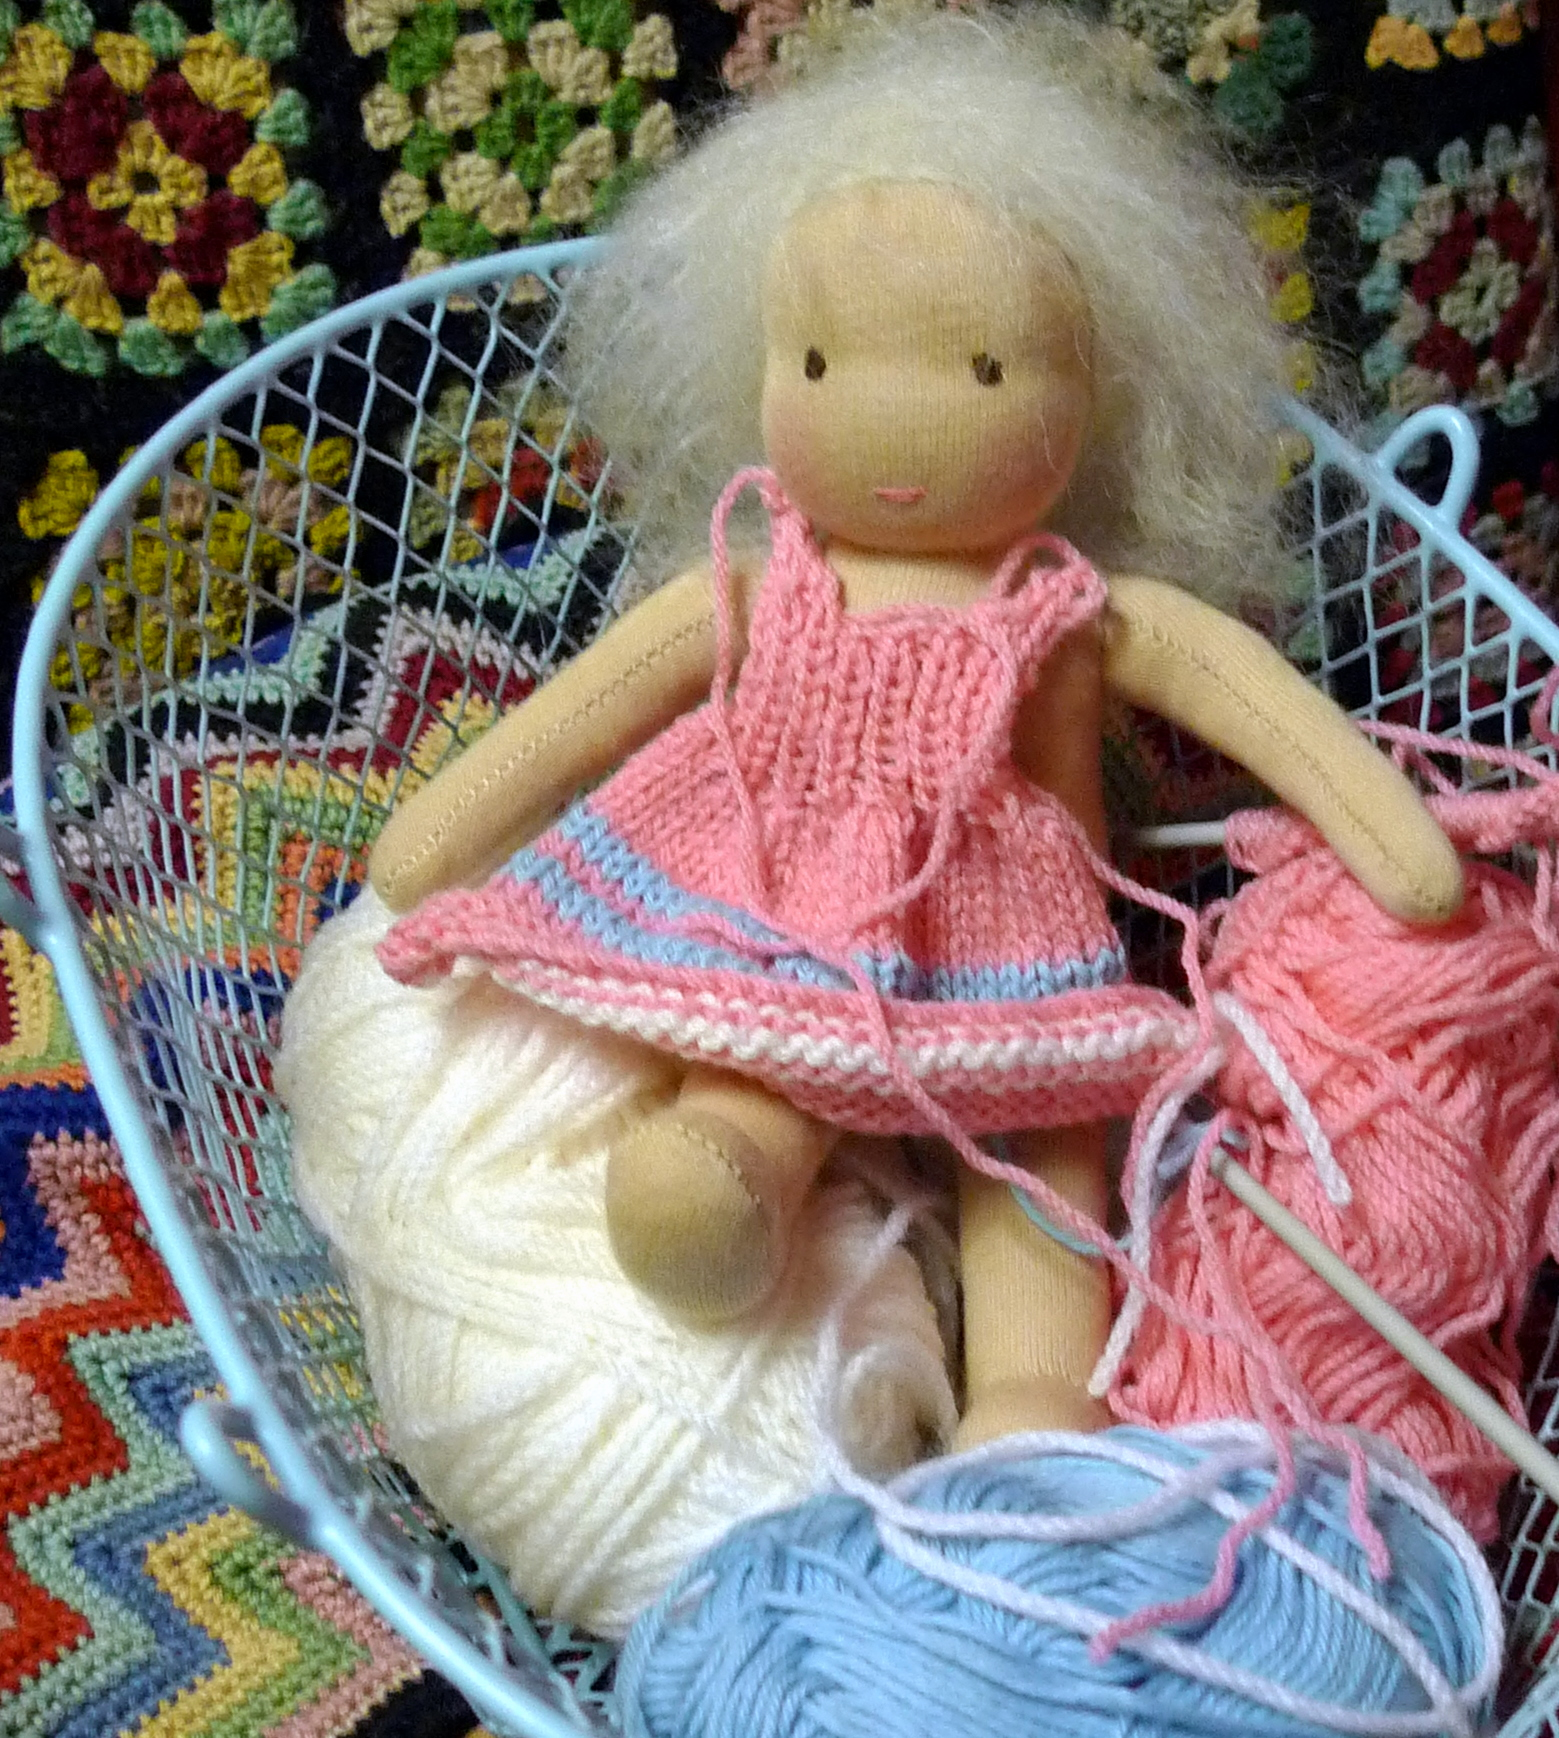 with her hair in eyes and her colour bleached out by the artificial light she waits for the knitter to finish her dress.